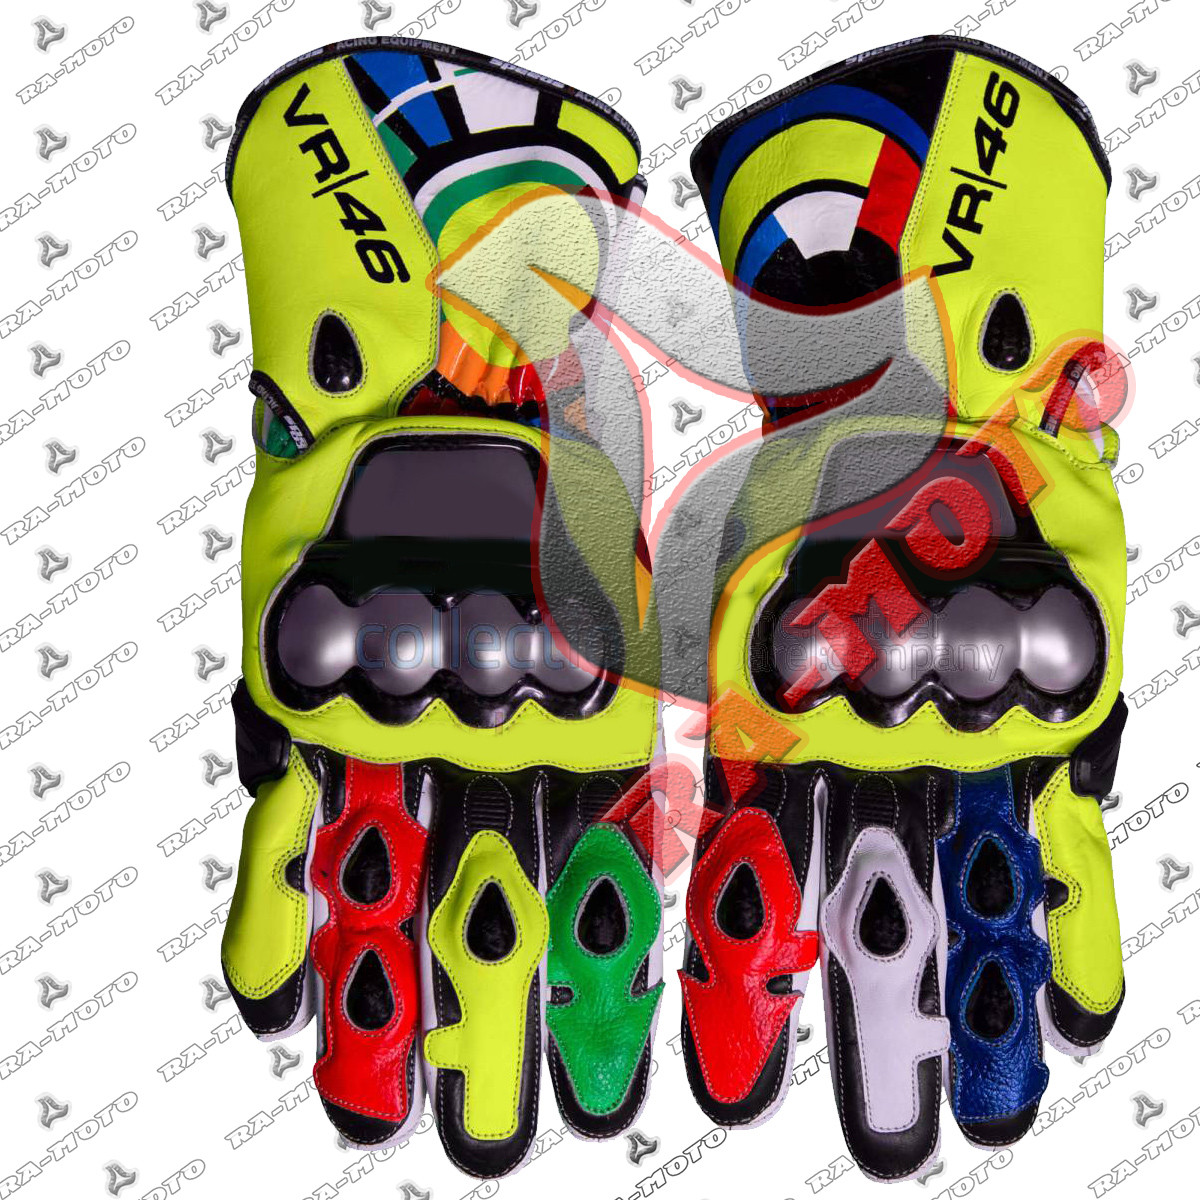 RA-15230 Valentino Rossi 2012 Racing Leather Gloves